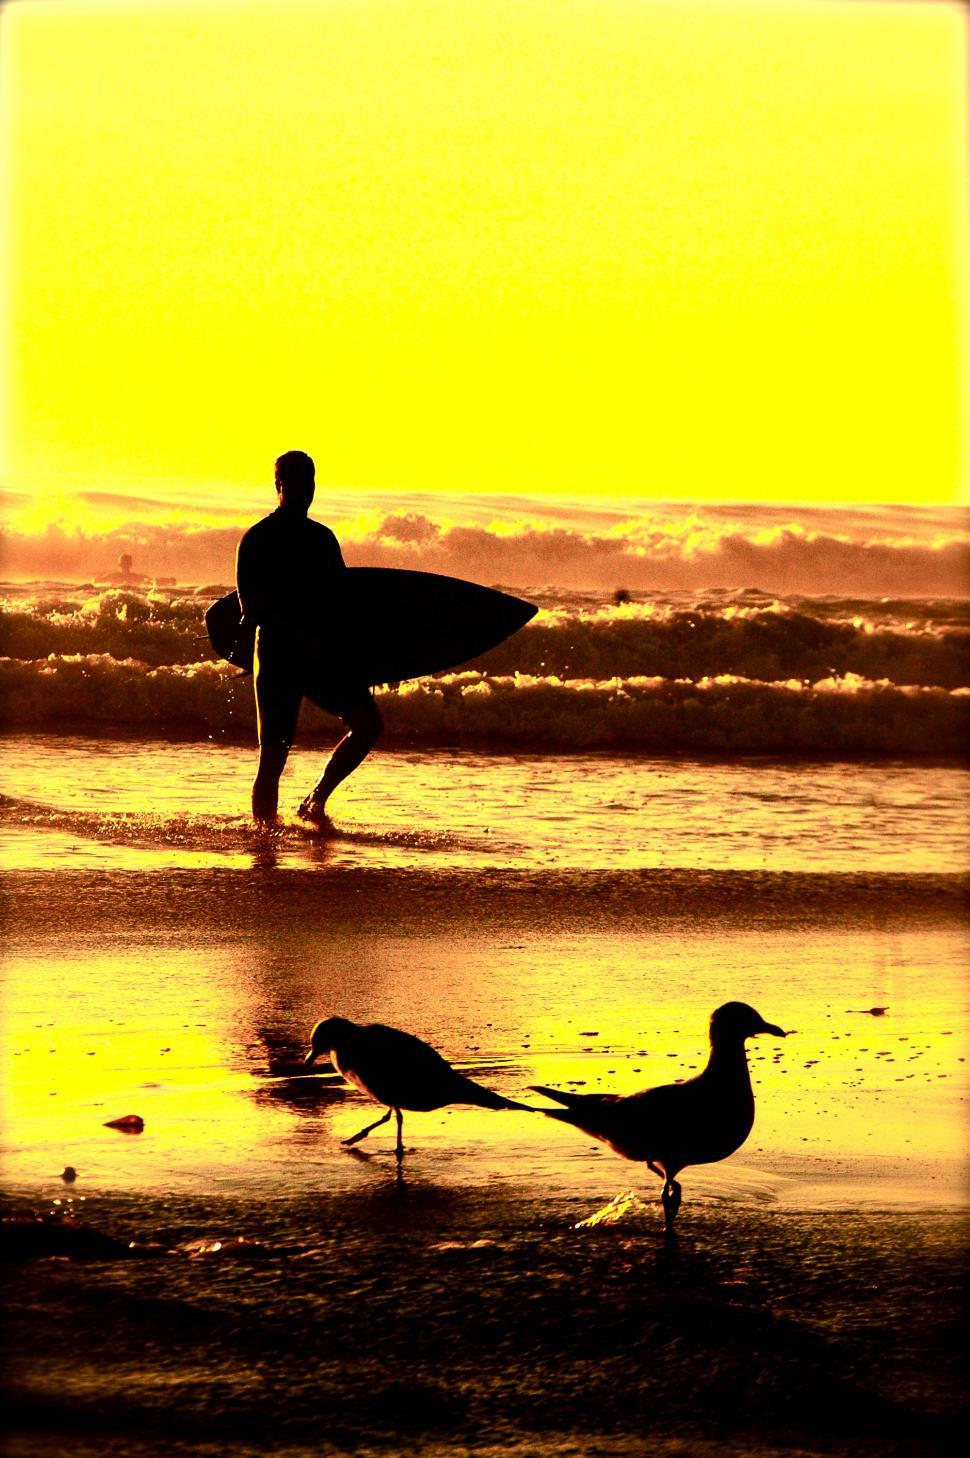 Download Free Stock HD Photo of Surfer emerges from a sunset Surf. Birds by the Ocean Beach Online